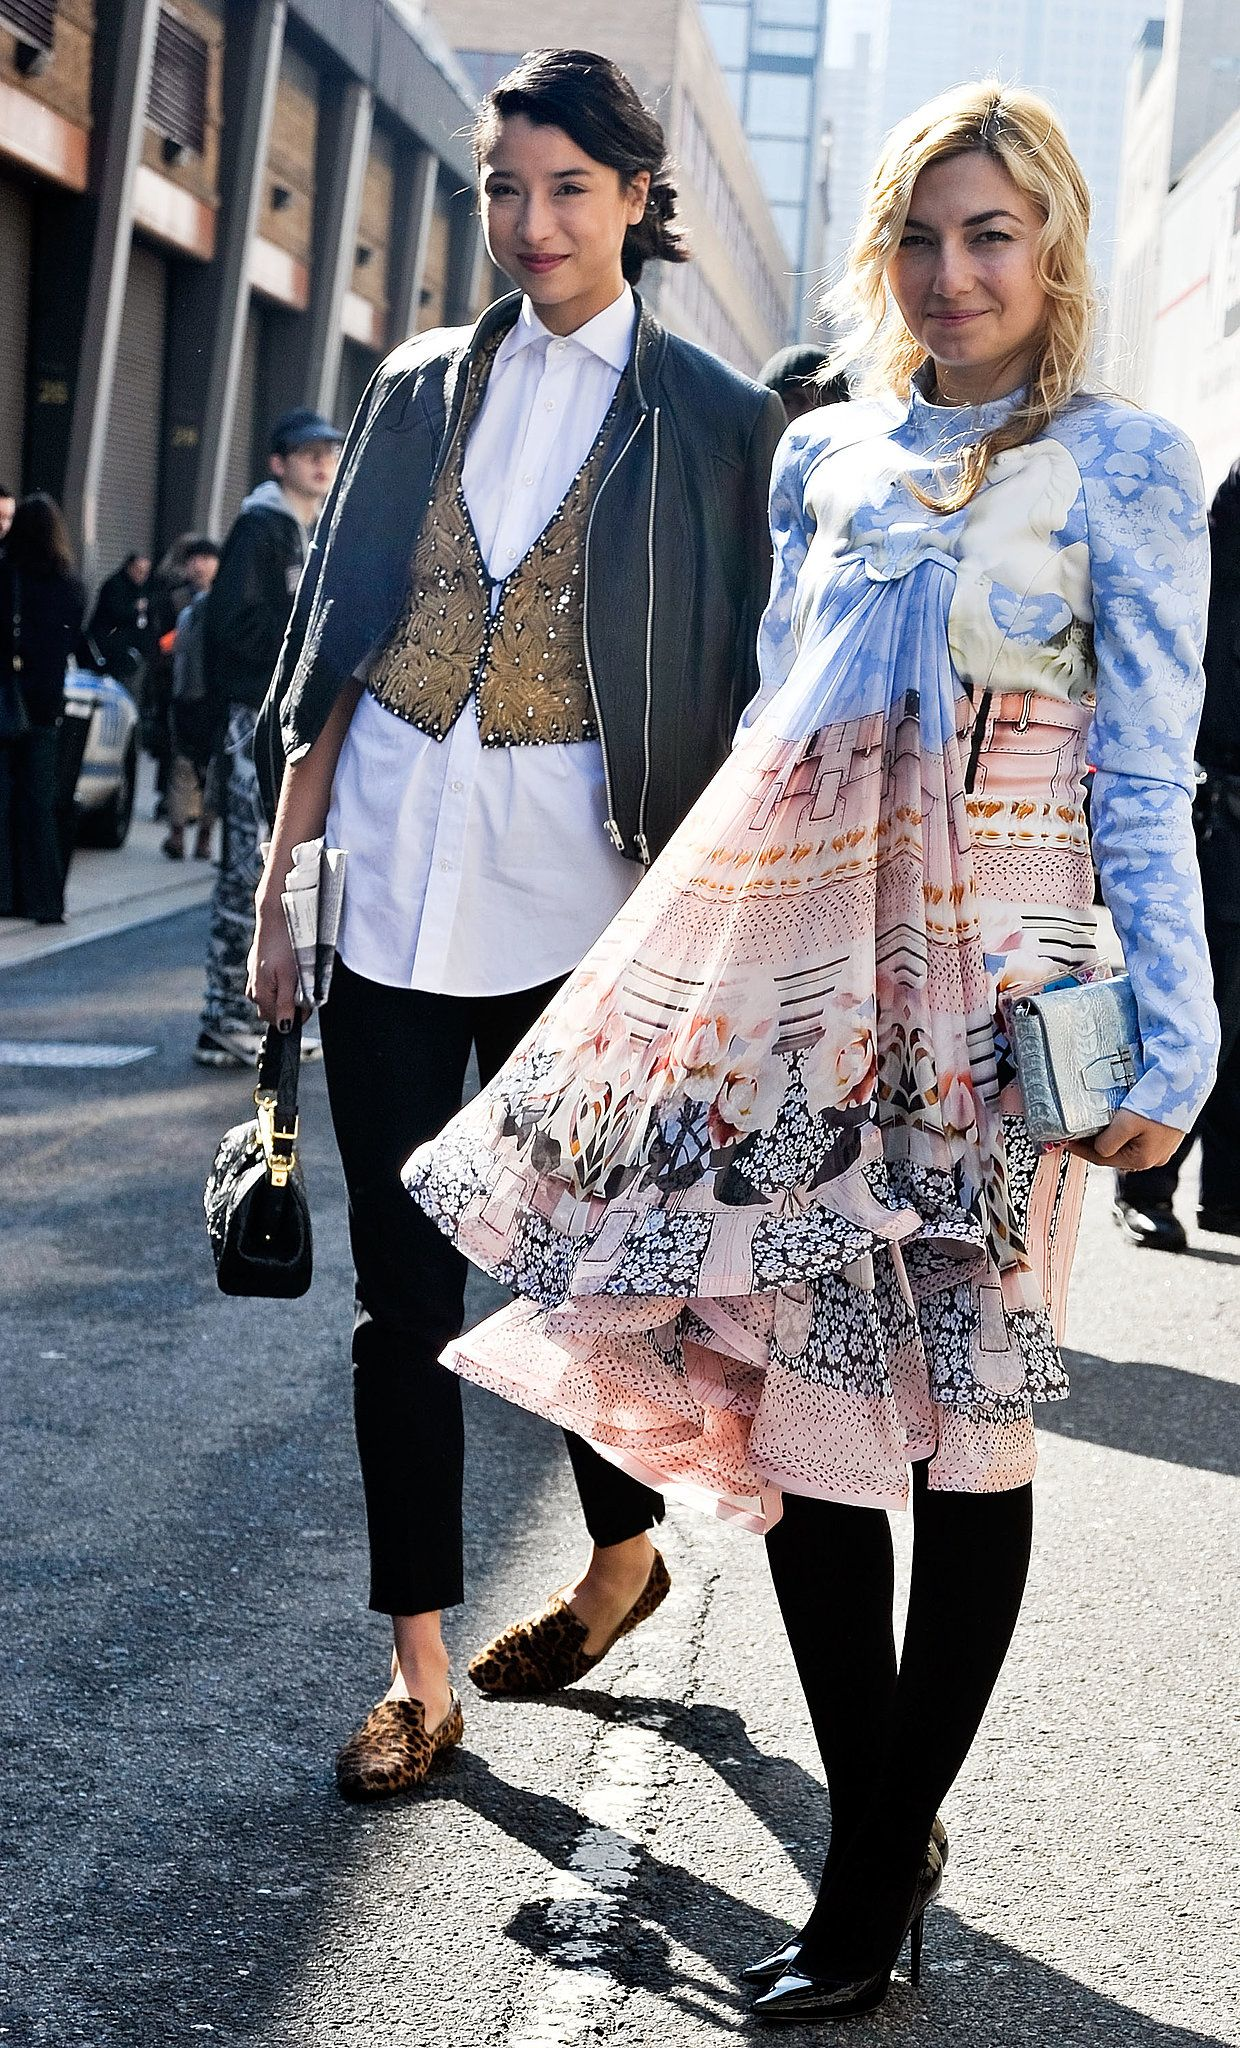 Lily Kwong outfitted a classic white button-down with an embellished vest and loafers, while her fellow show-goer made a statement in a soft, printed babydoll dress.